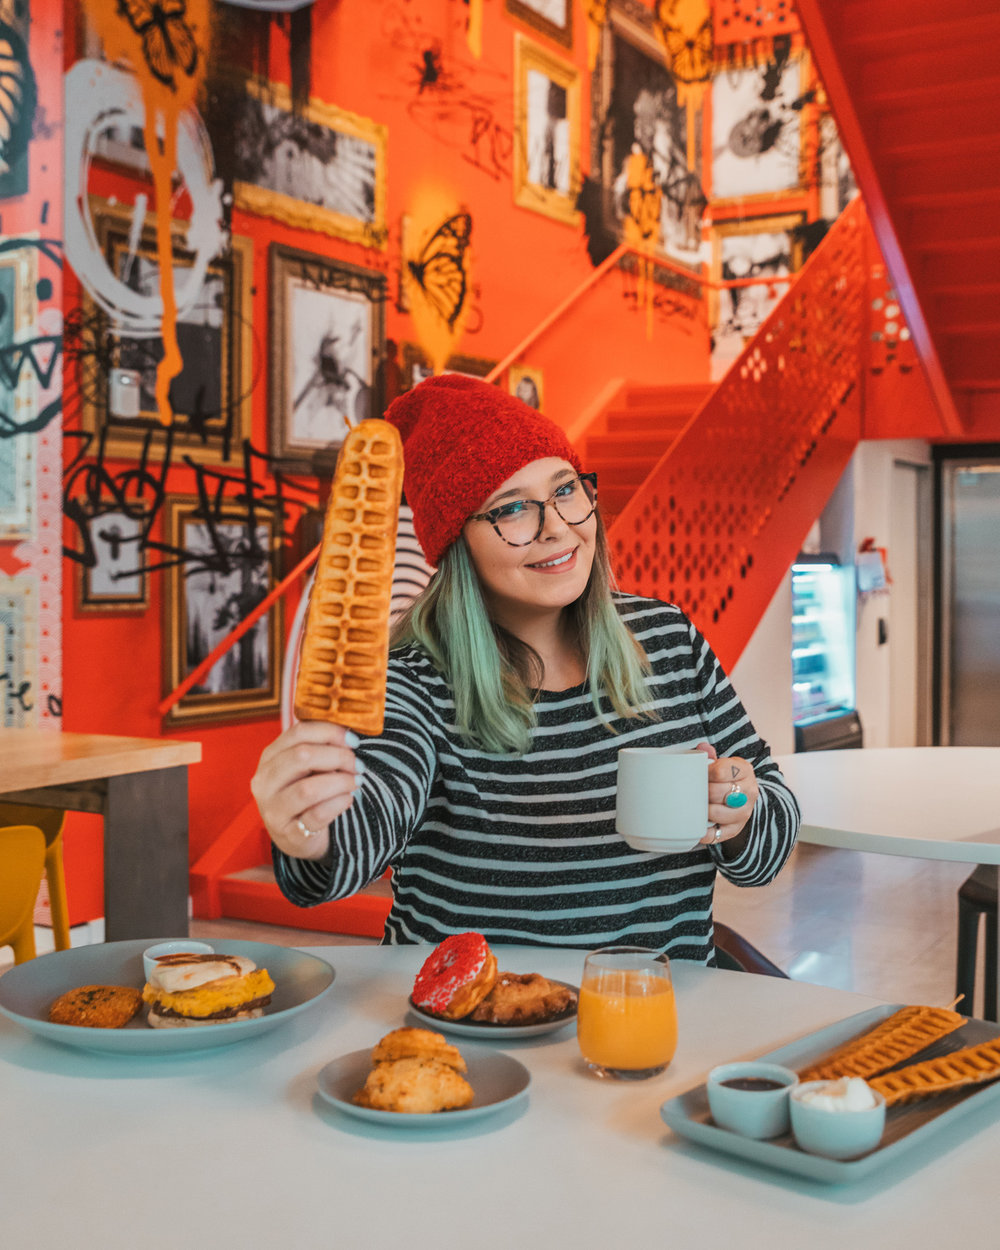 Radisson RED Restaurant with waffles on a stick // The Most Instagrammable Spots in Portland, Oregon // #readysetjetset #portland #oregon #pdx #pnw #blogpost #photoguide